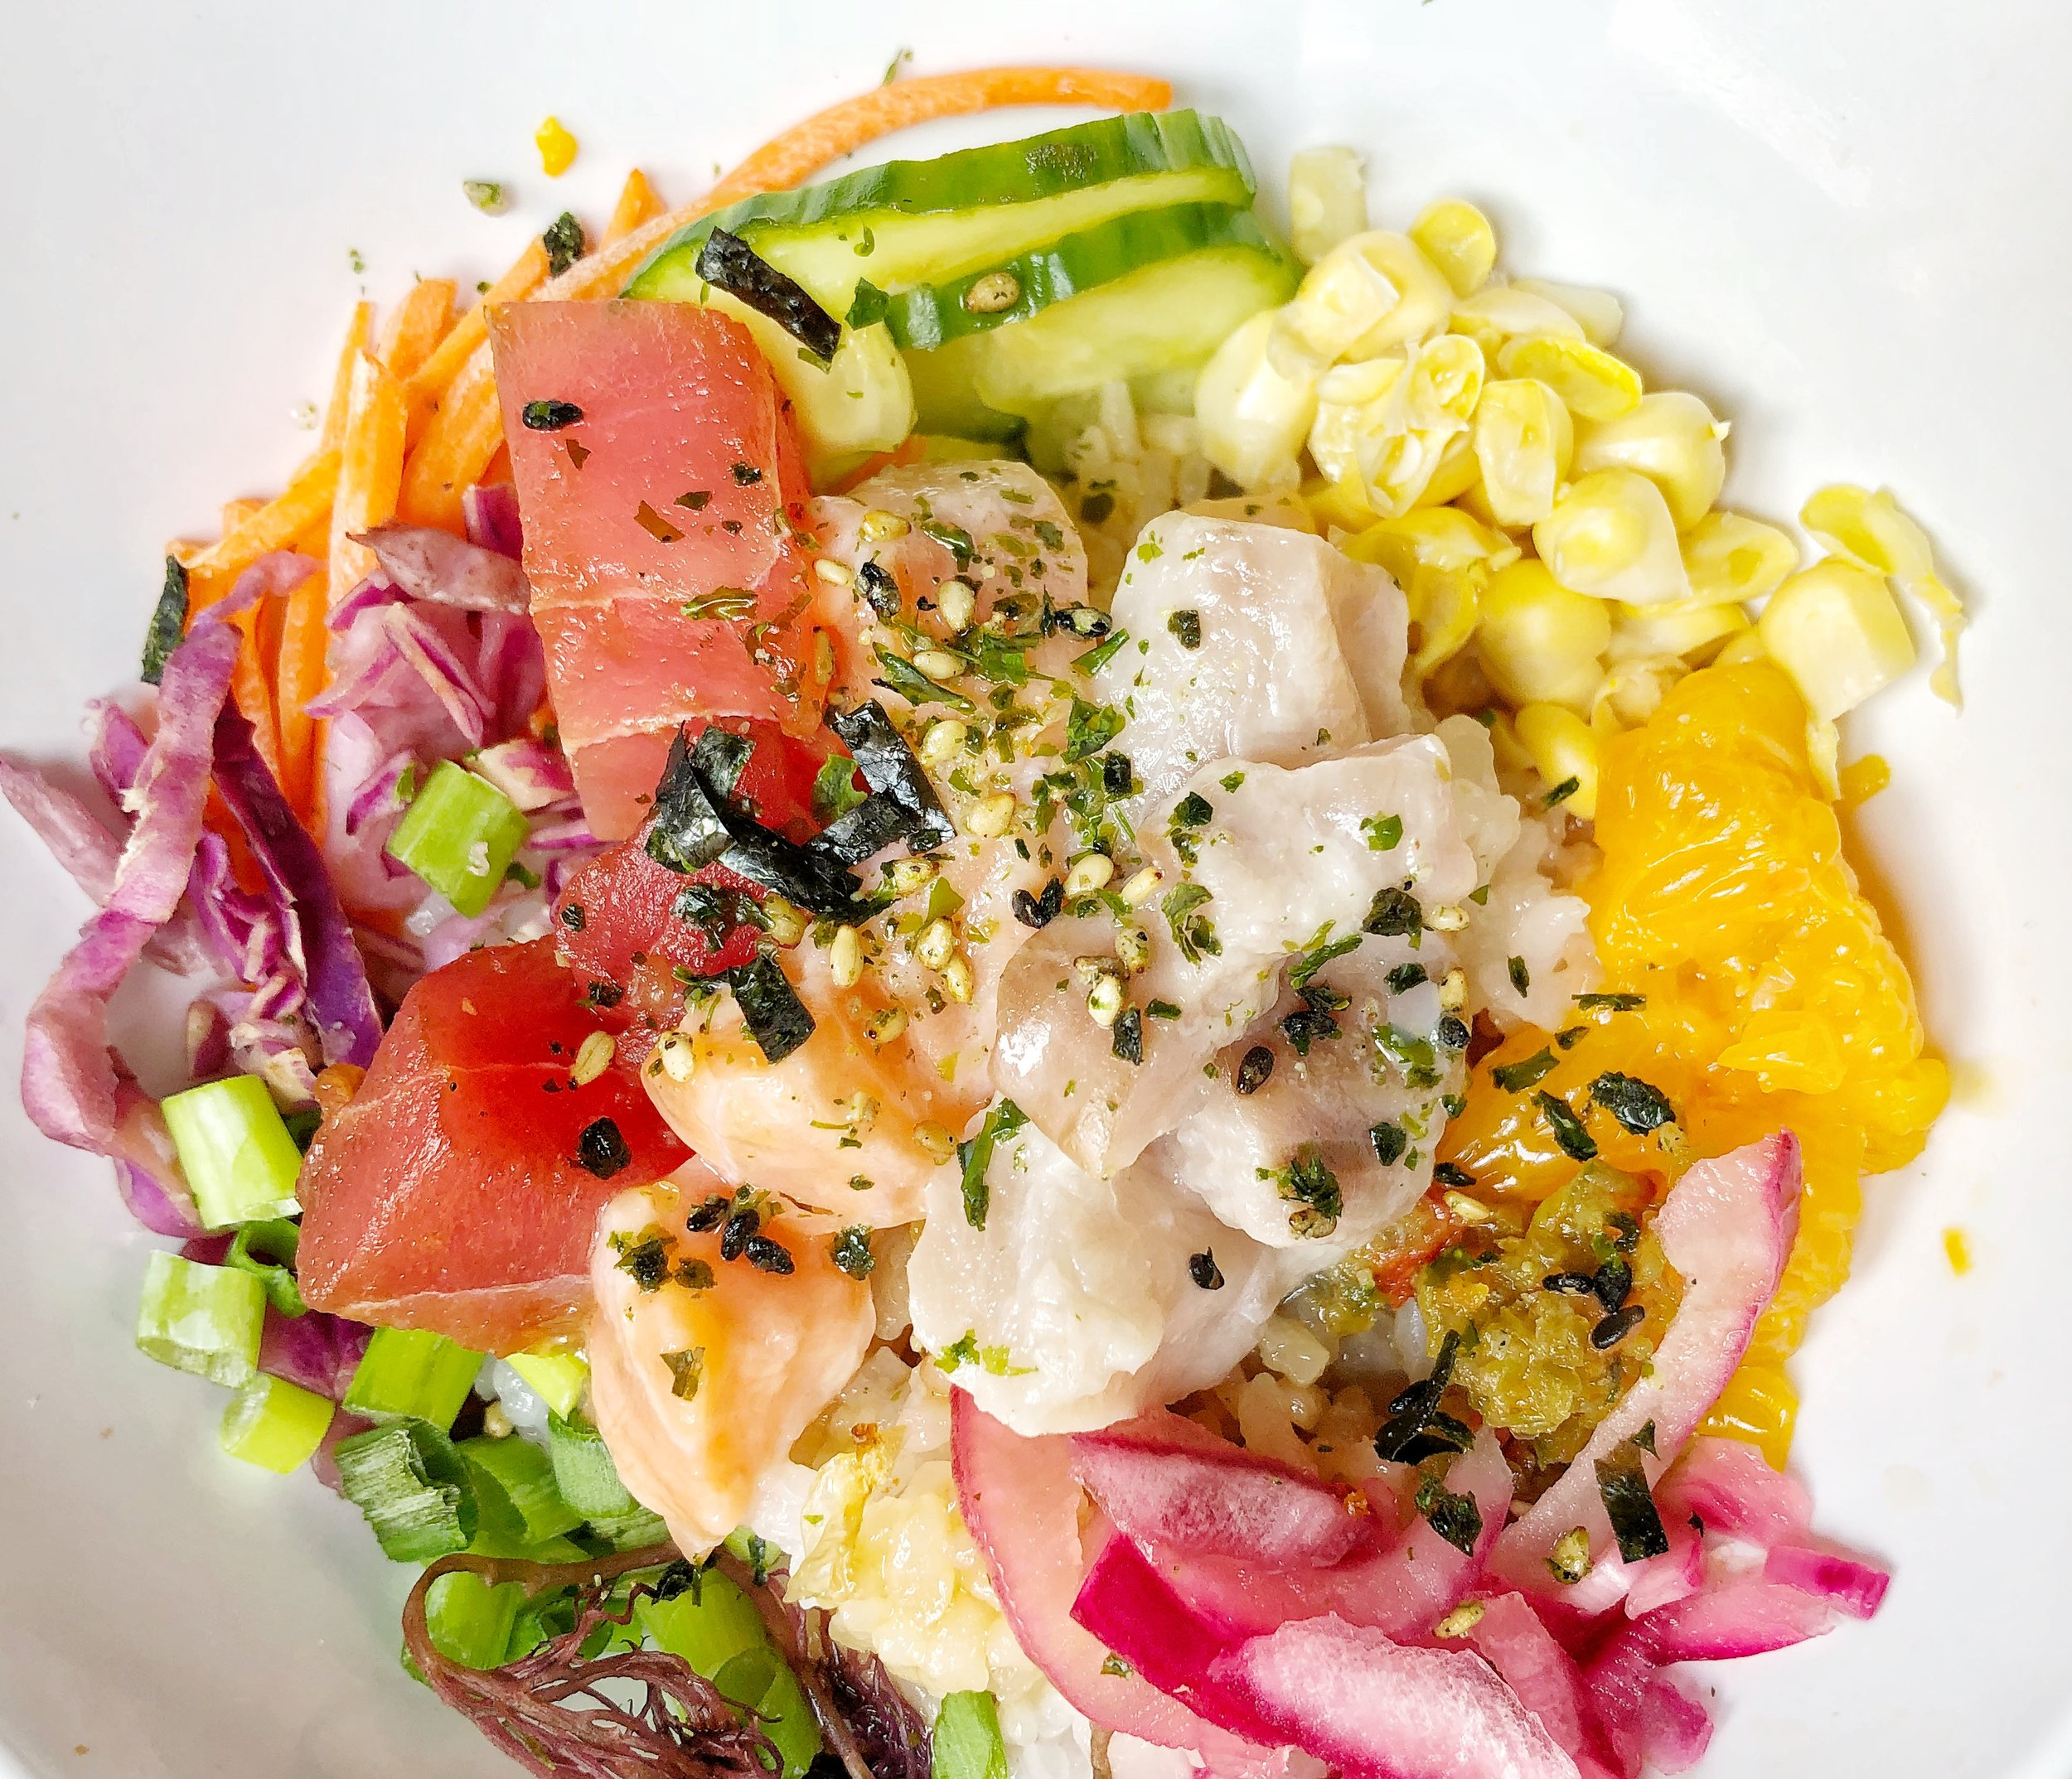 Rainbow Poke Bowl - Salmon, Hamachi, Ahi Tuna, Scallions, Pickled Red Onion, Red Cabbage, Sweet Corn, Cucumber, Limu/Ogo, Carrots, Mandarin Orange, Jalapeno/Serrano Salad, Shuyu Sesame Oil, Seasoned Milky Queen Rice